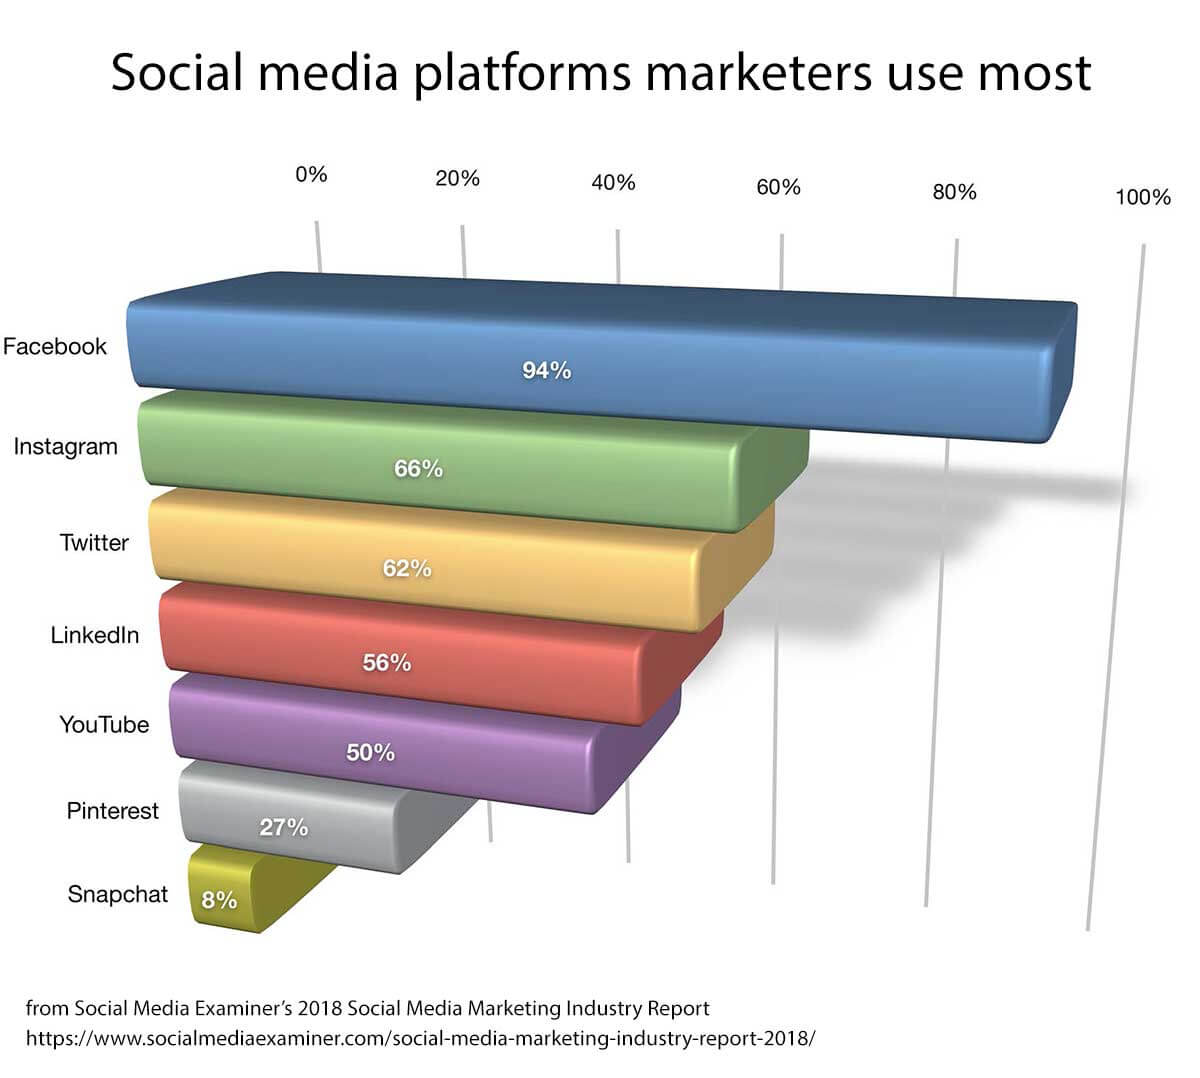 Social media platforms marketers use most